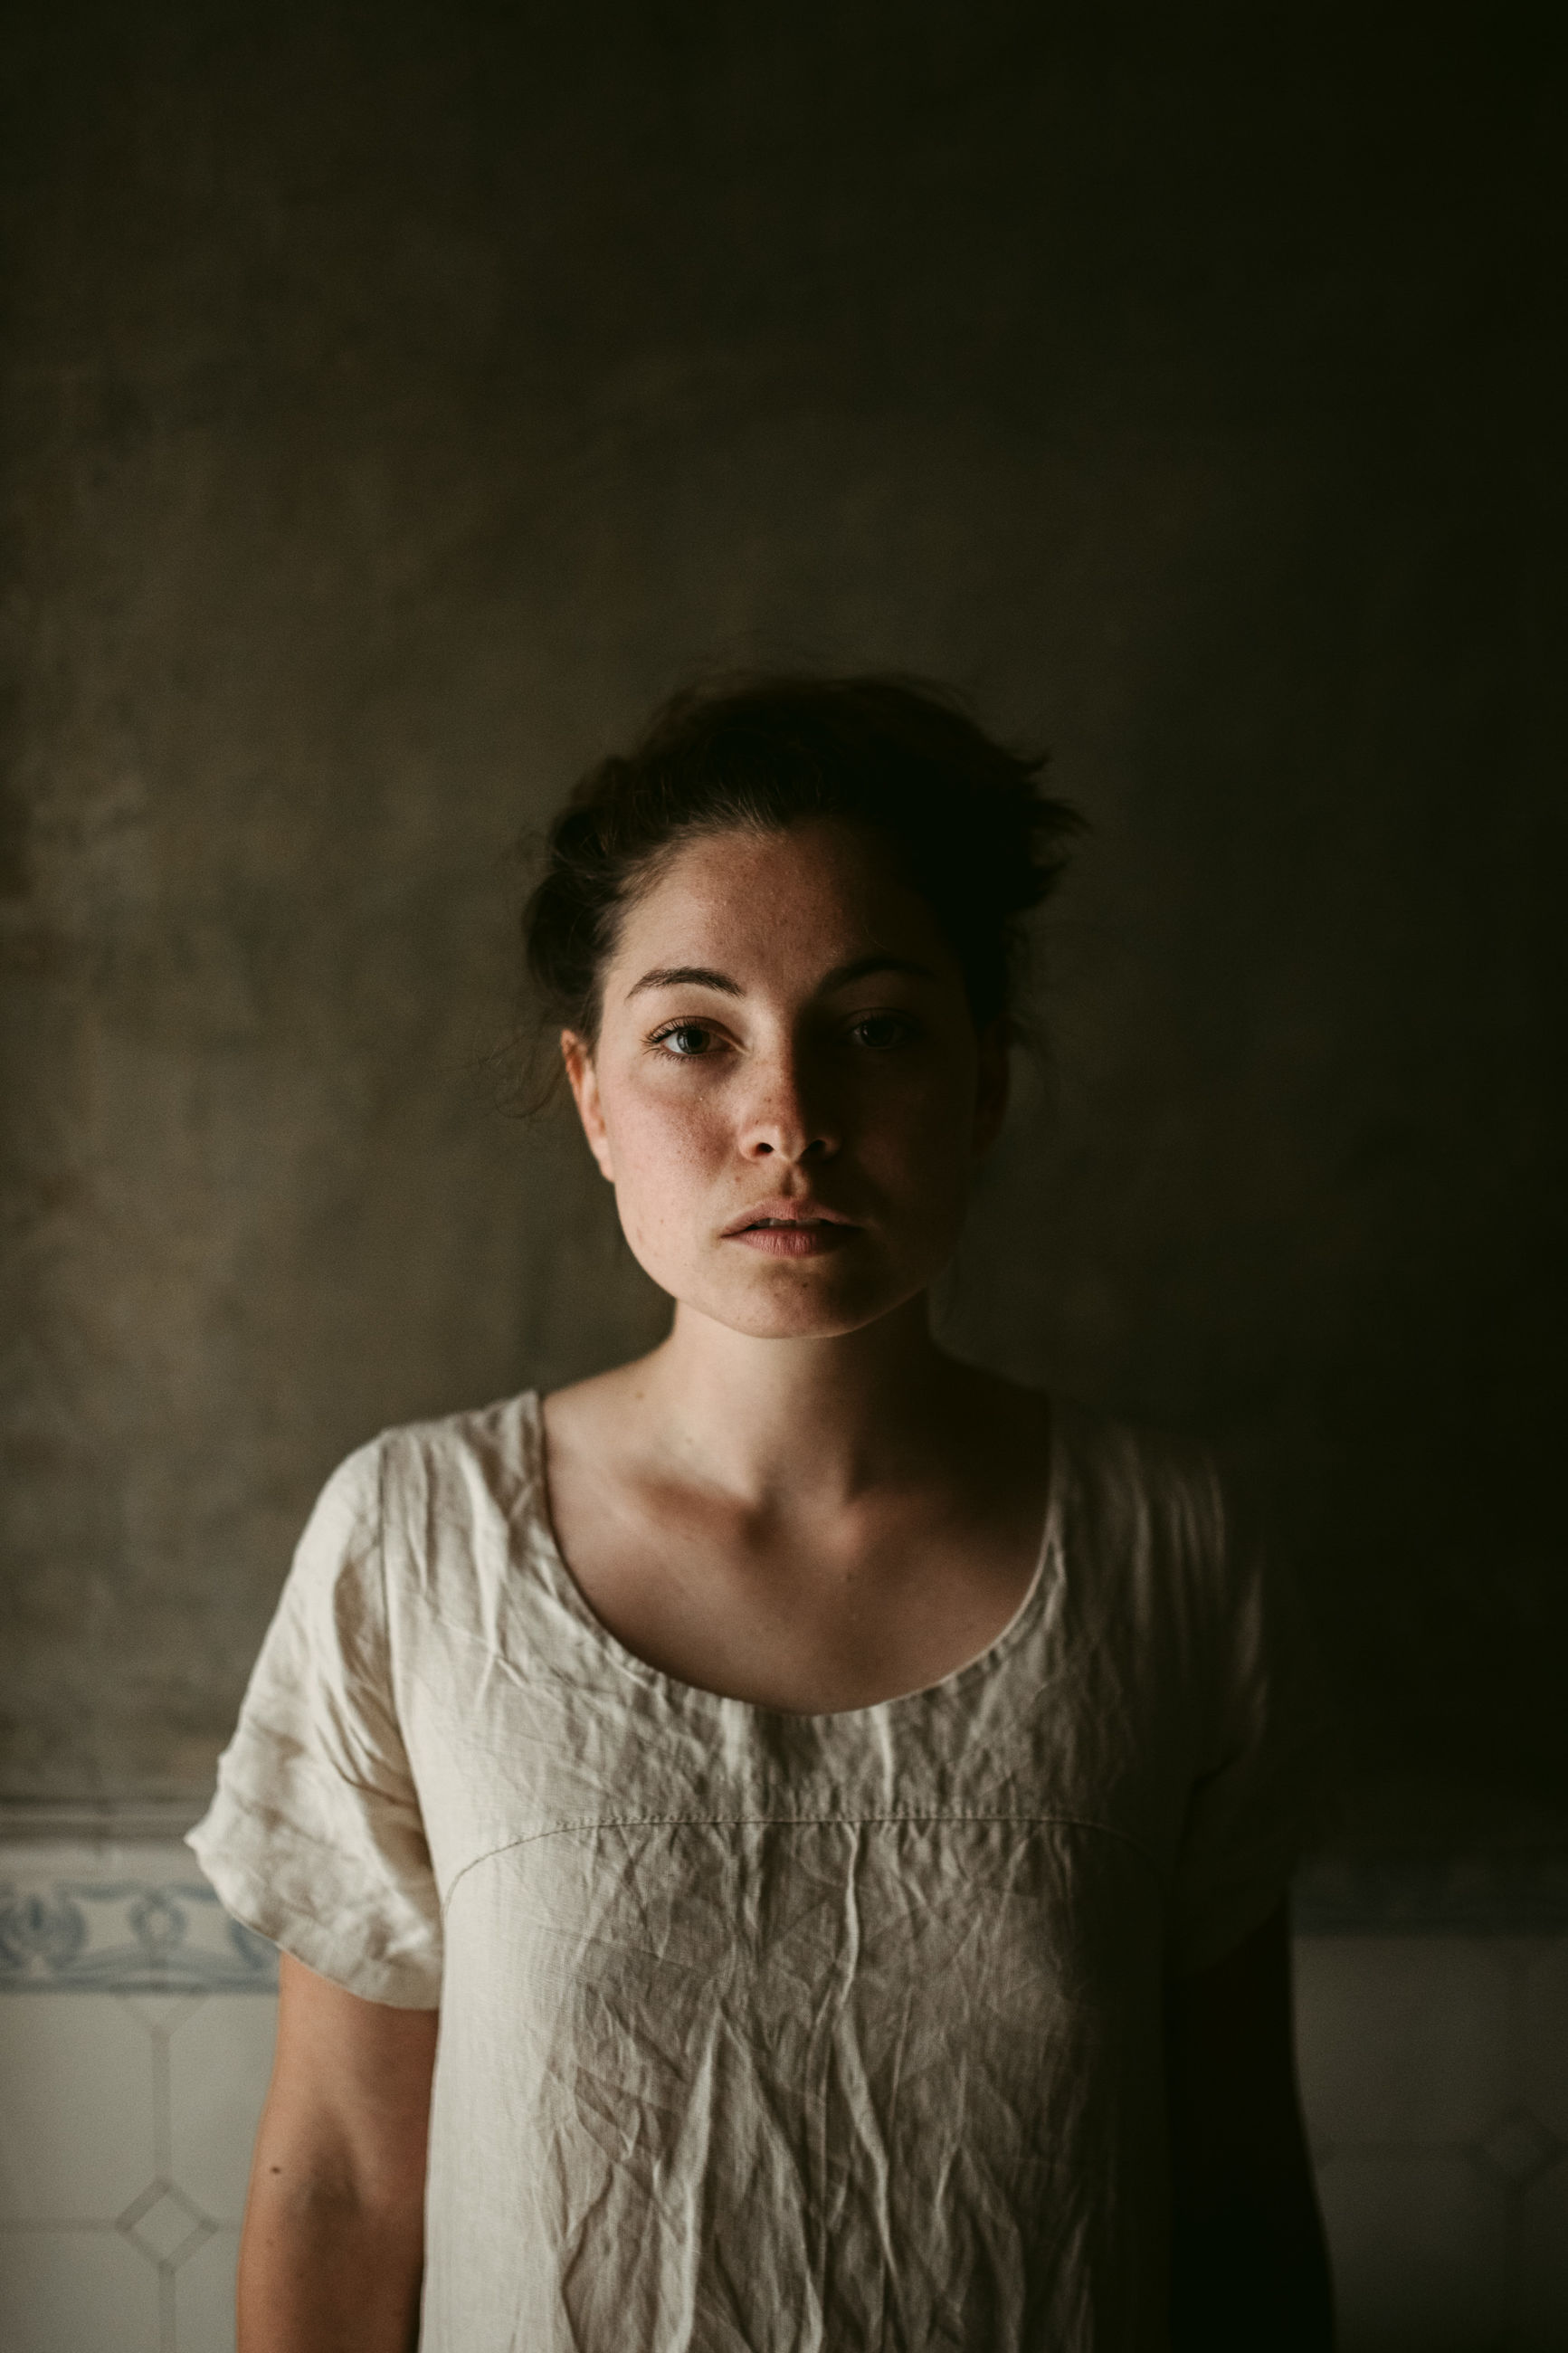 front view, portrait, one person, young adult, looking at camera, indoors, casual clothing, lifestyles, standing, women, real people, young women, waist up, wall - building feature, serious, focus on foreground, adult, hairstyle, contemplation, beautiful woman